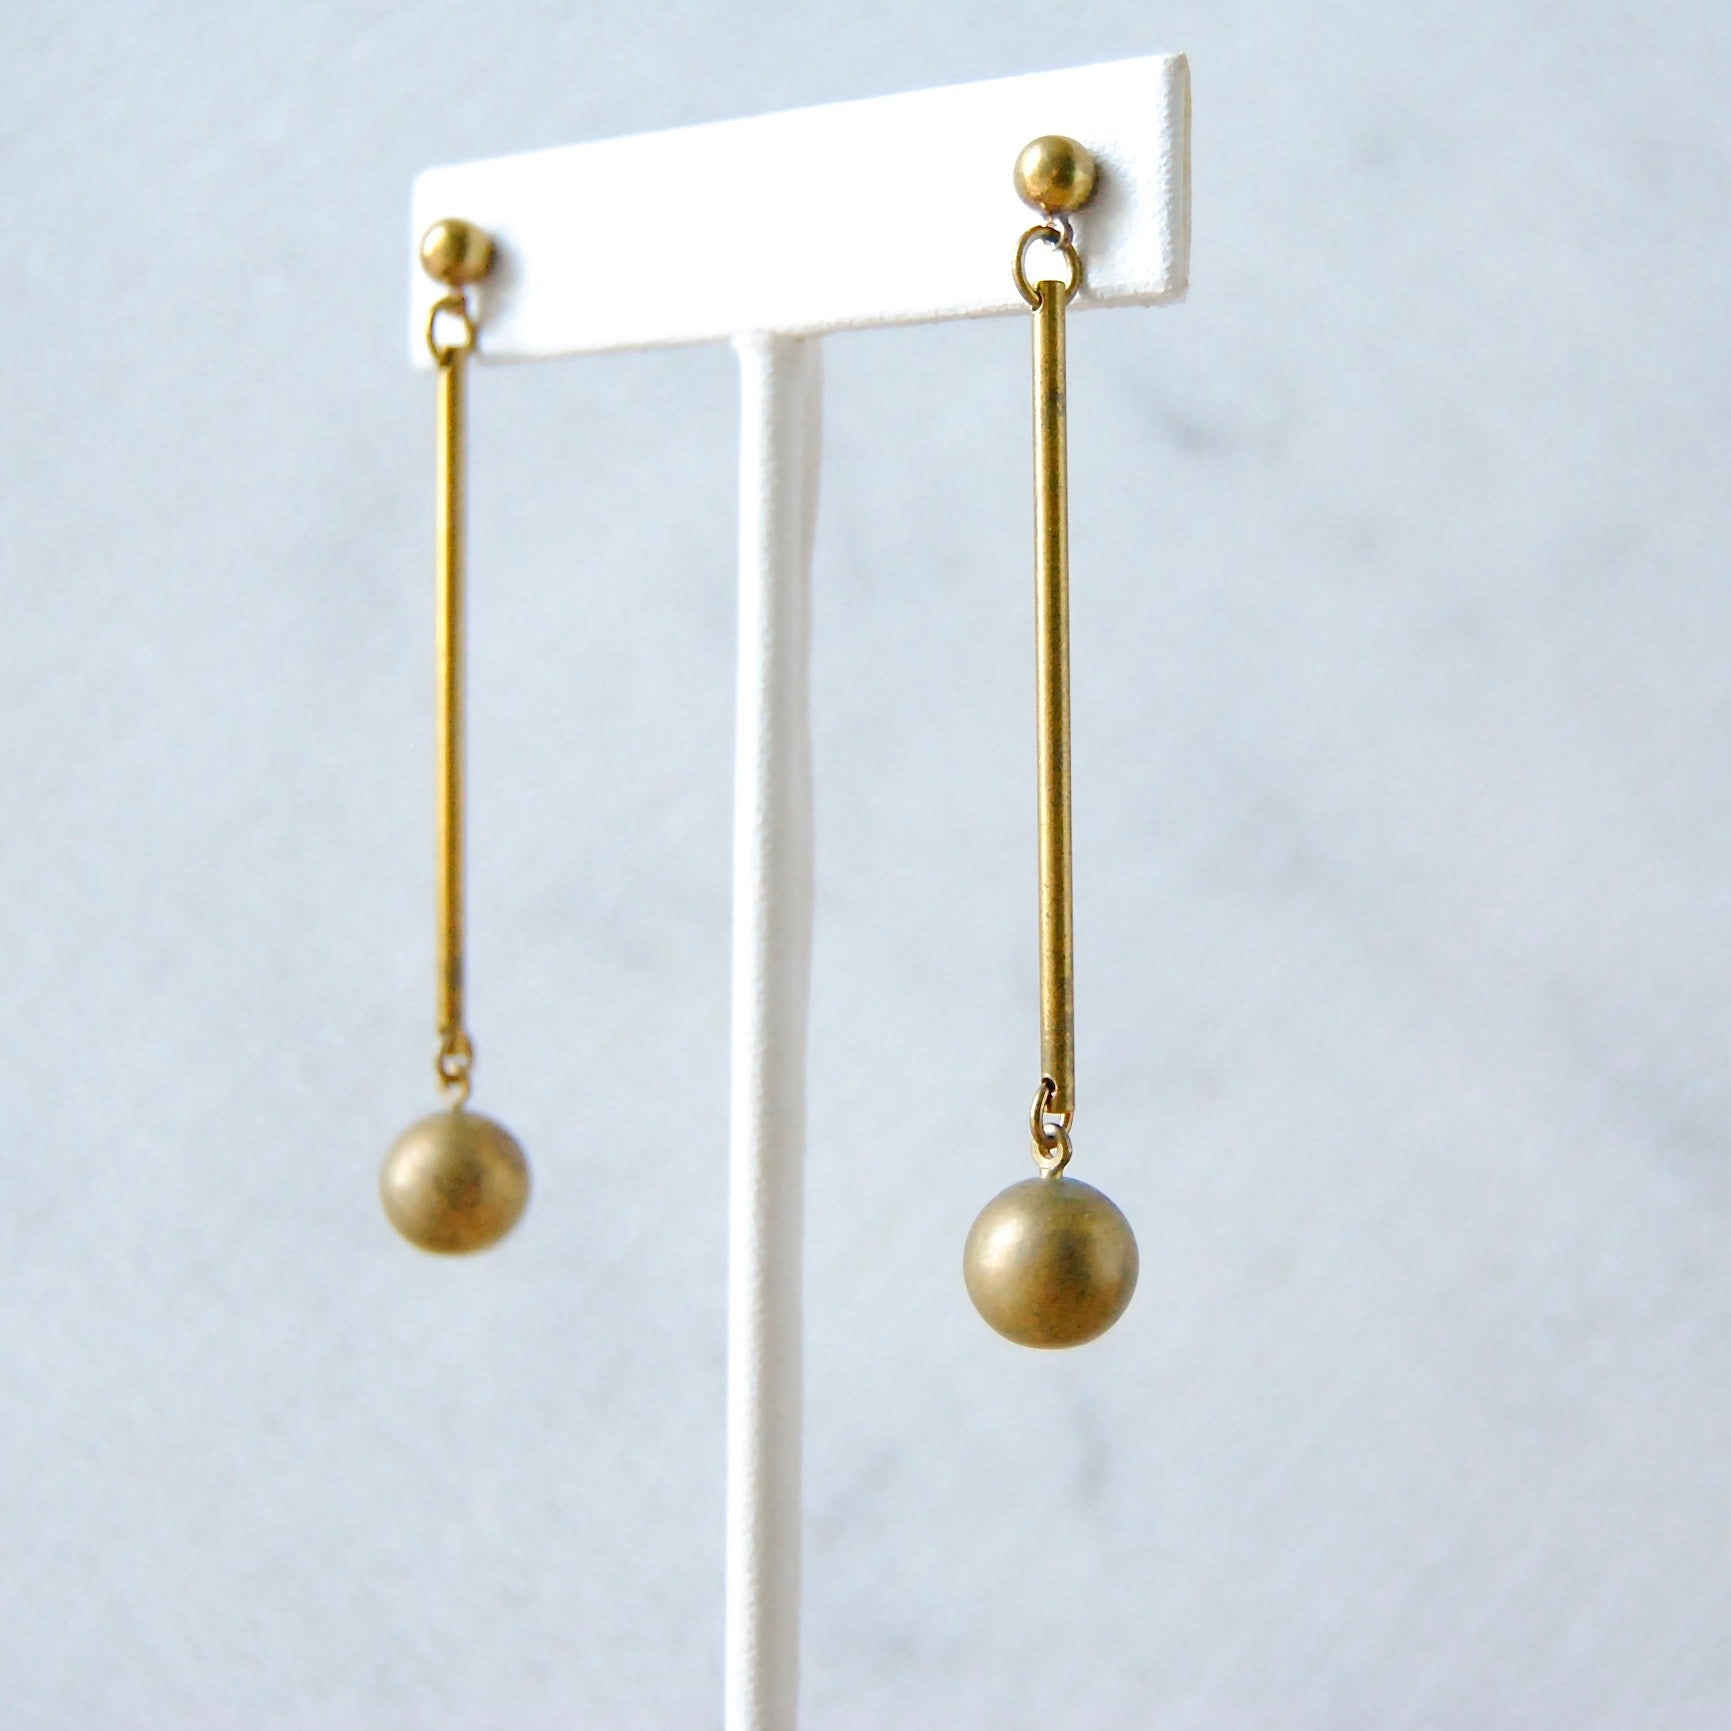 ORB EARRINGS